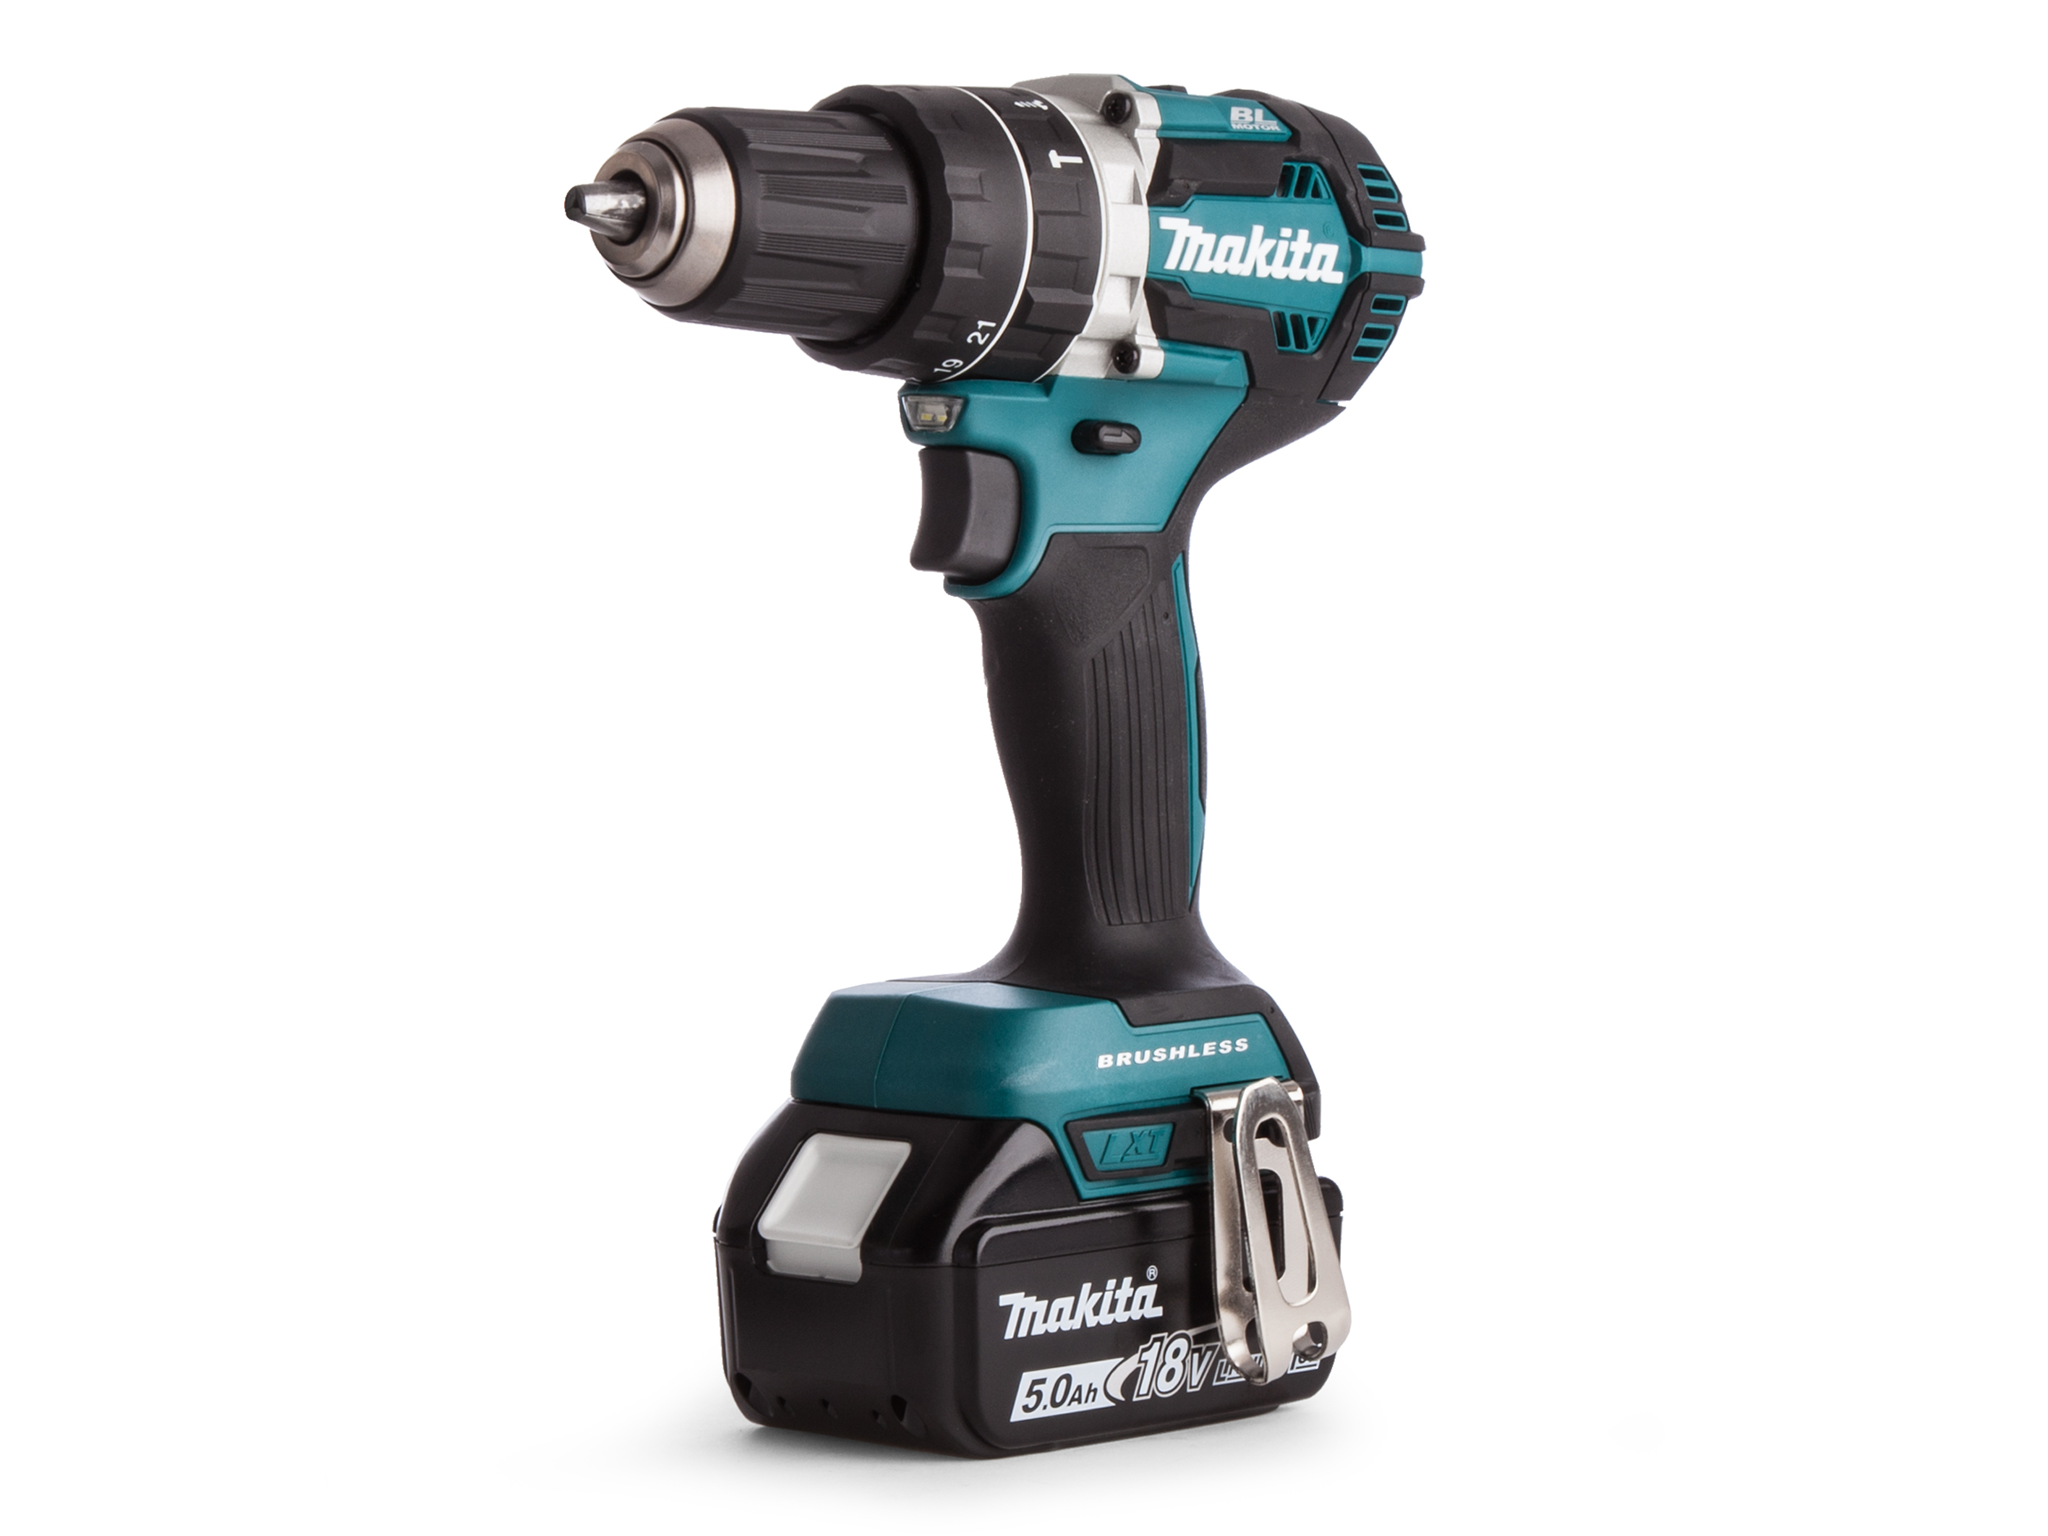 12 Best Cordless Drills And Drivers The Independent Stanley 18v Brushless Impact Driver Makita Dhp484rtj Combi Drill 269 Power Tool World